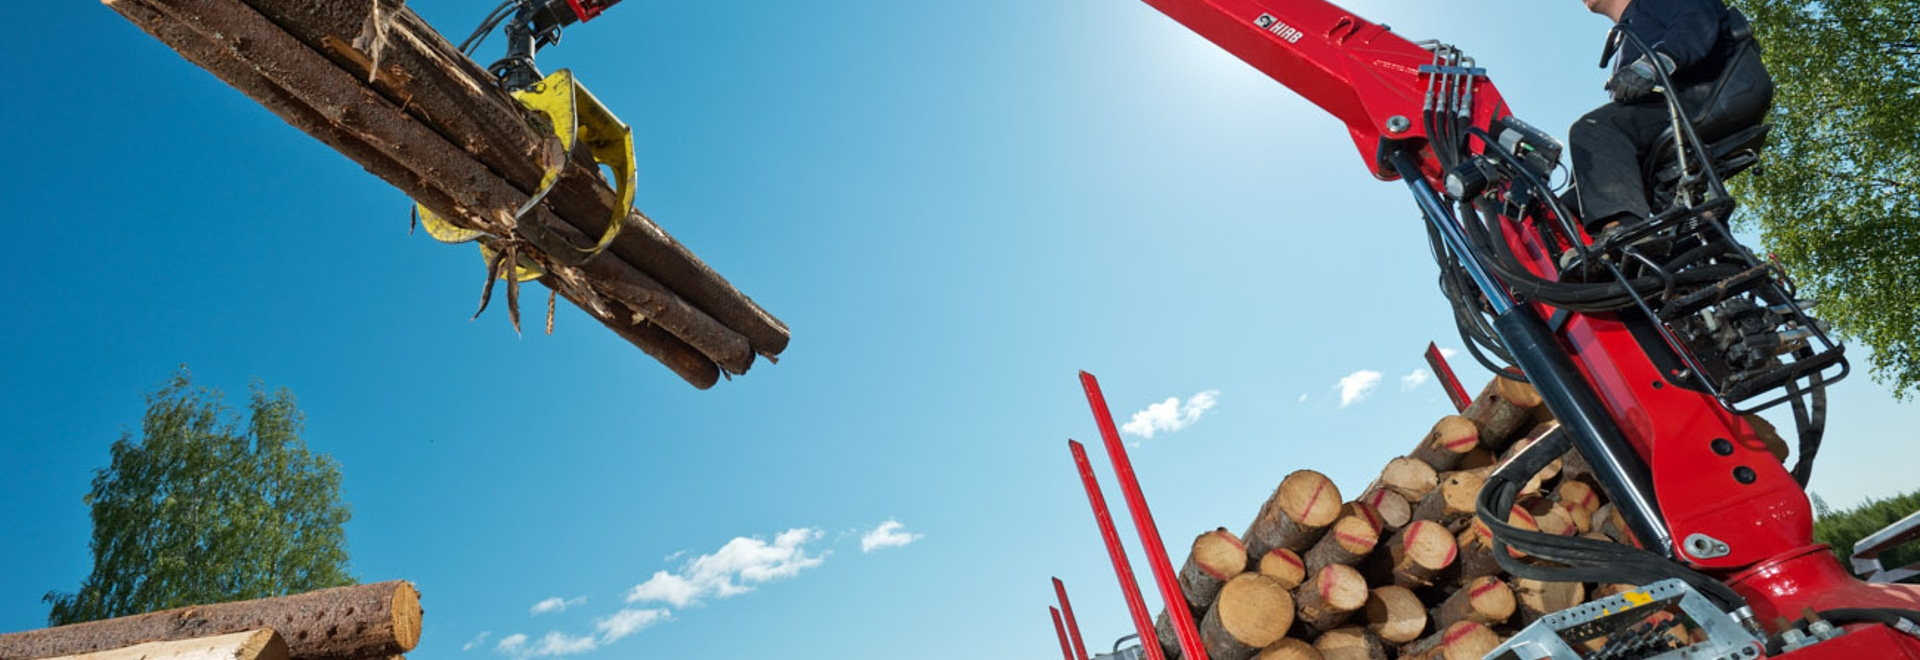 Hiab receives an order for forestry cranes from Russia